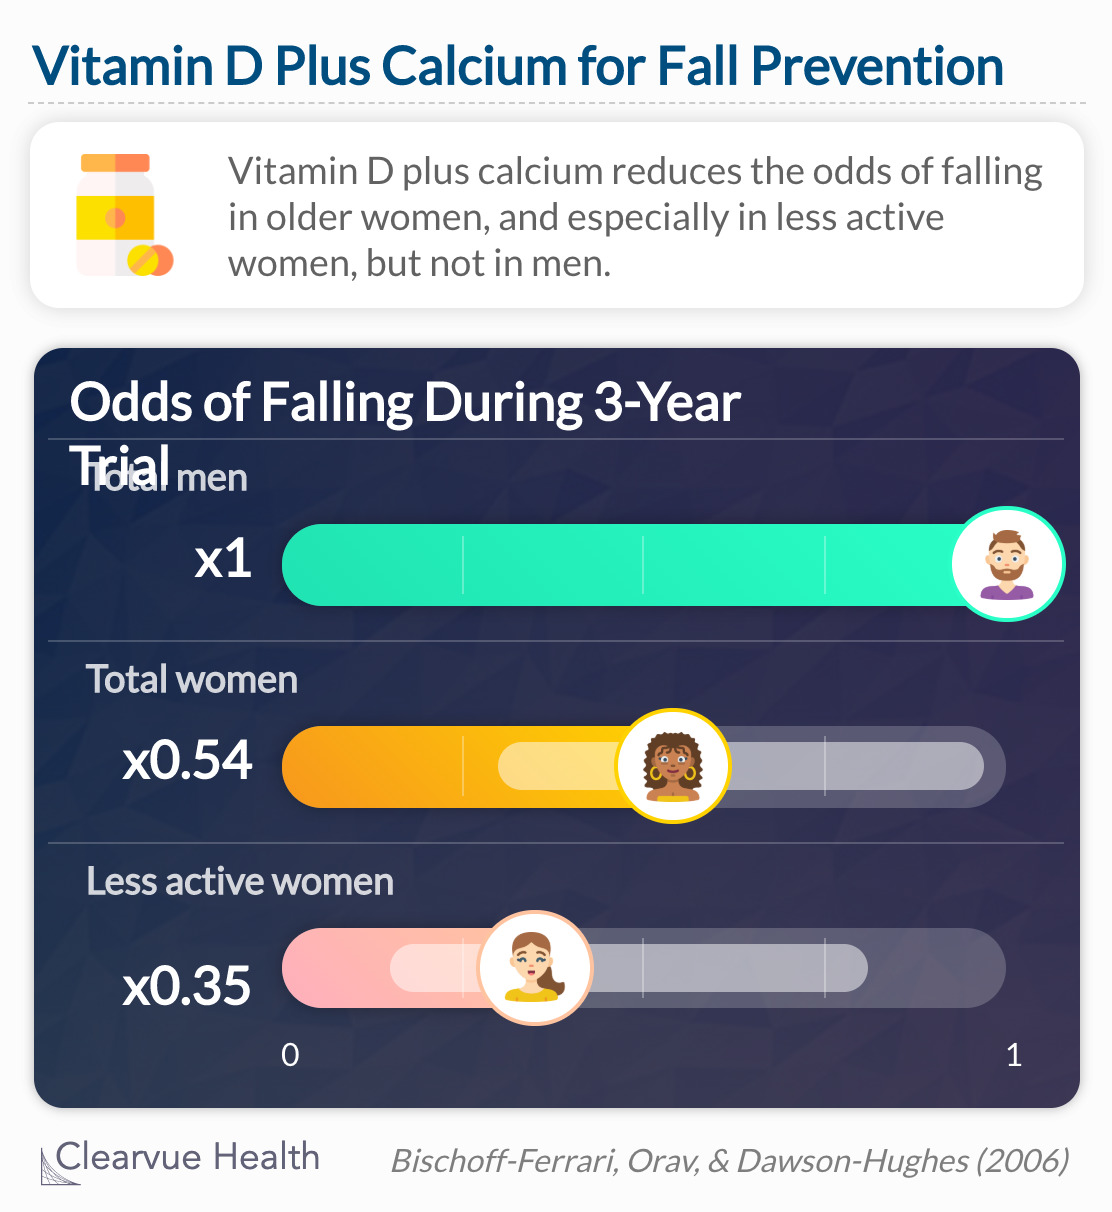 Long-term dietary cholecalciferol-calcium supplementation reduces the odds of falling in ambulatory older women by 46%, and especially in less active women by 65%.